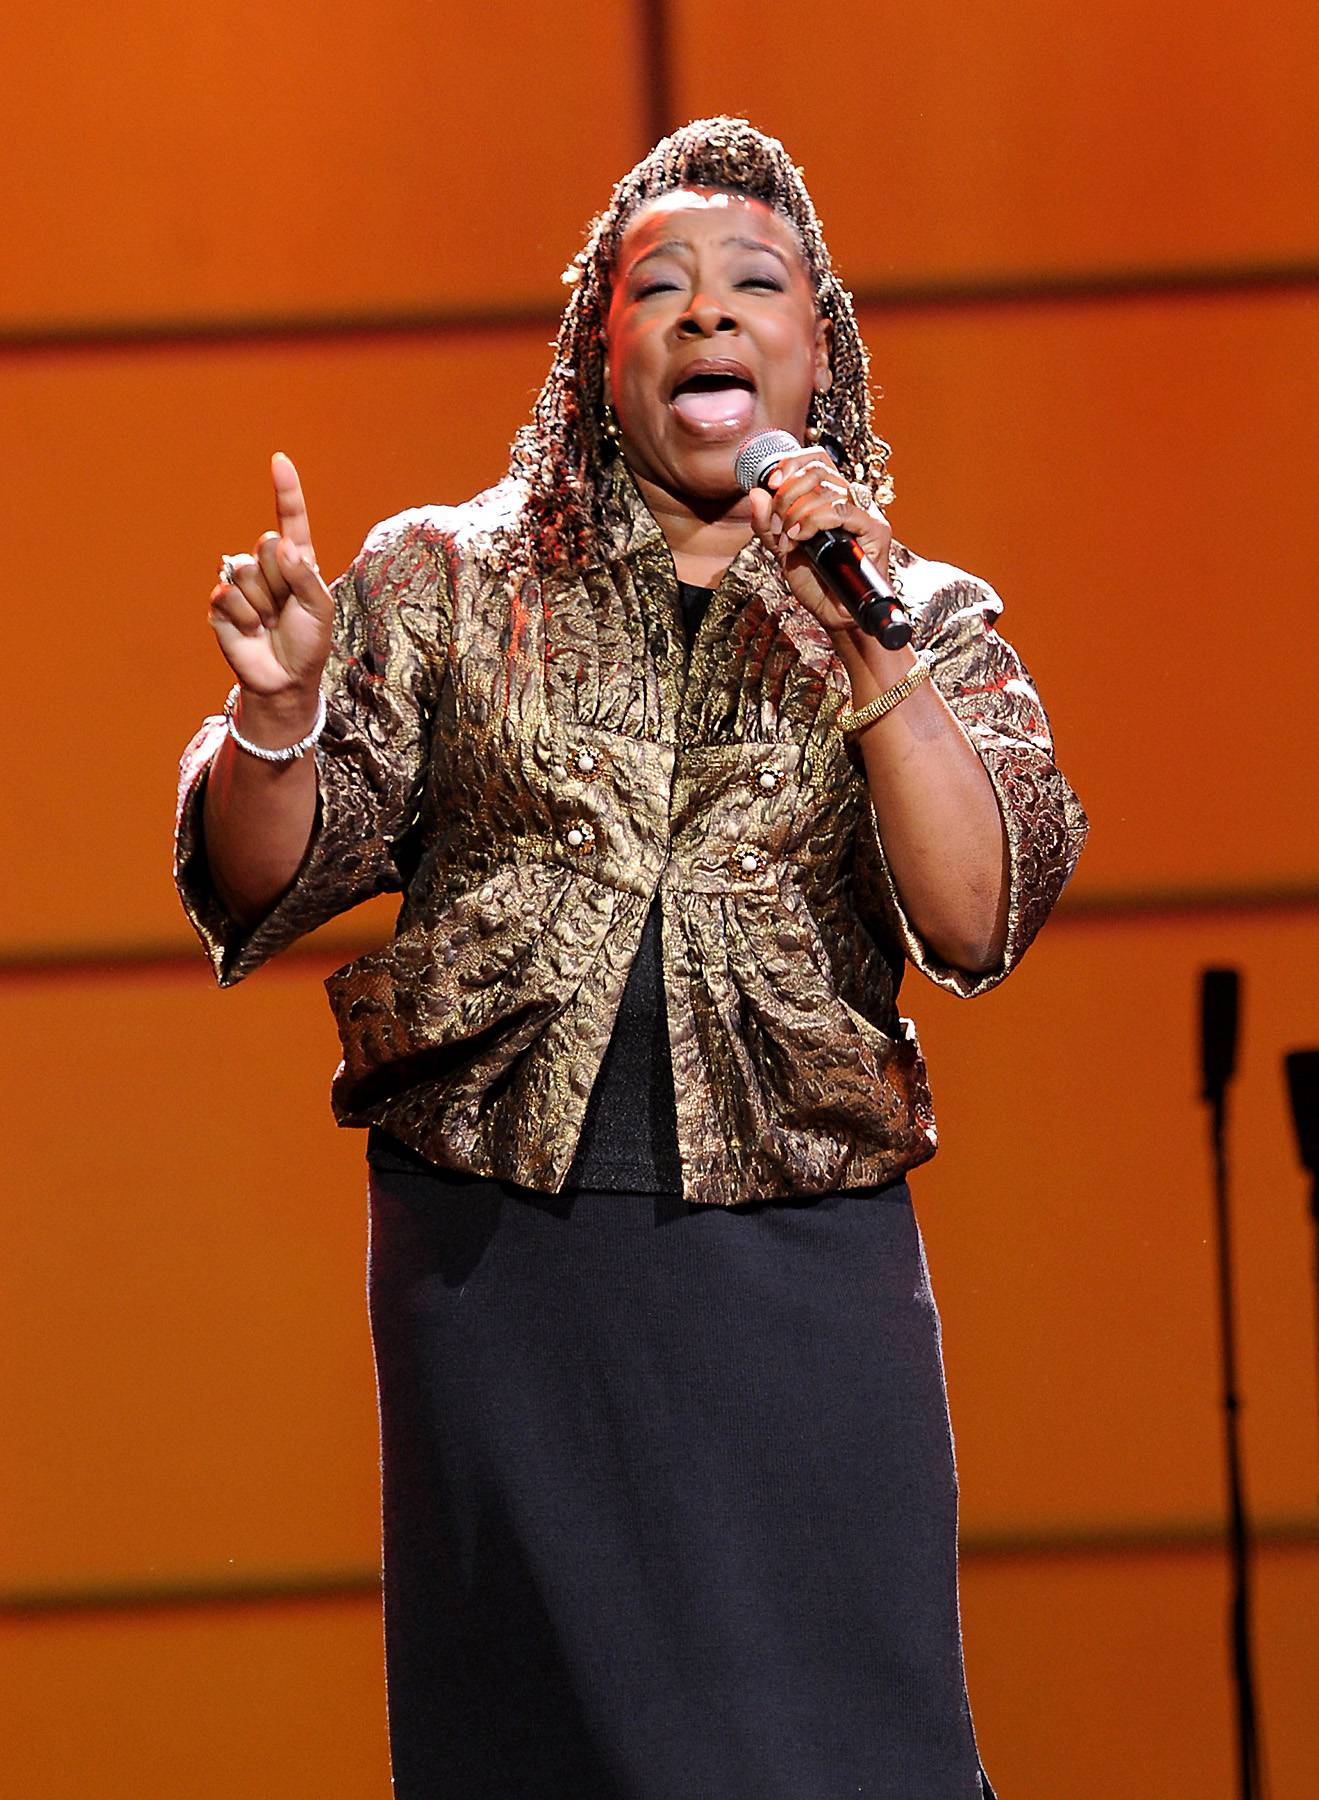 Beverly Crawford - She's a gospel favorite and best known for her vocals on Bobby Jones Gospel. Pastor Beverly Crawford continues to let God use her as vessel for His work. (Photo: Rick Diamond/Getty Images for Verizon)